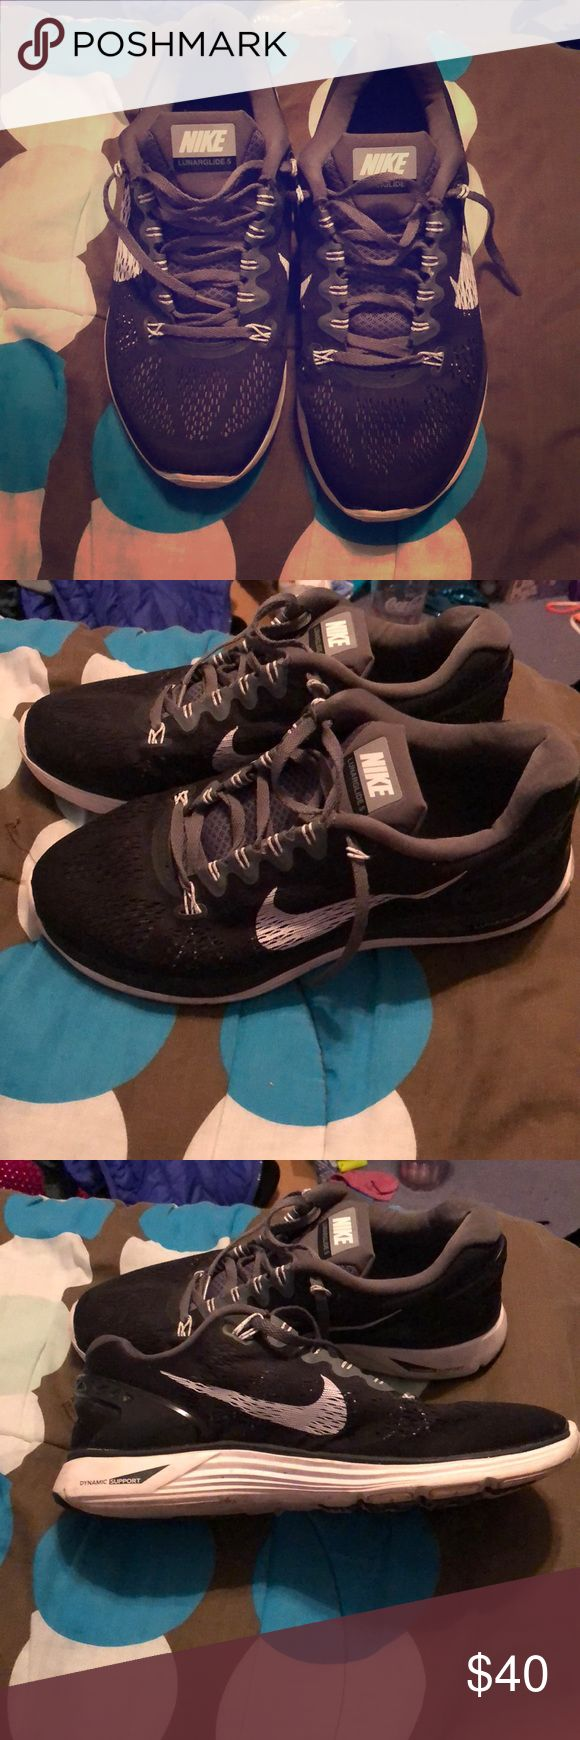 Nike Lunarglide 5 In great condition black Nike Lunarglide 5 men's shoes. Smoke free home! Nike Shoes Athletic Shoes